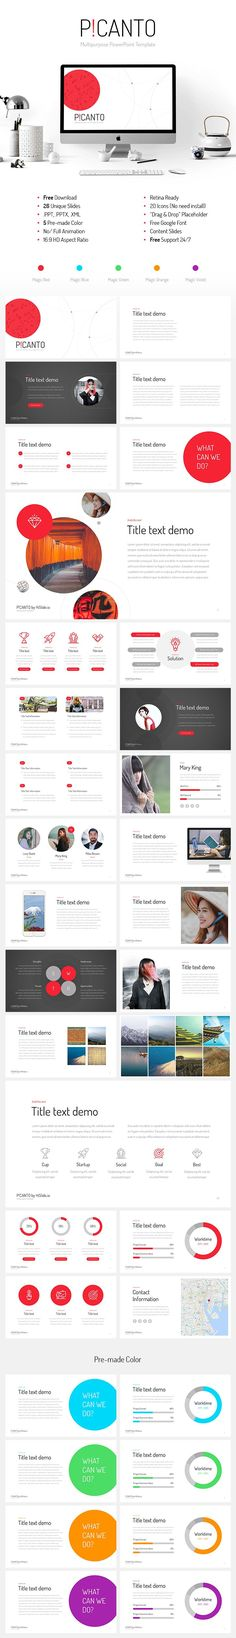 7 best free powerpoint templates on behance images on pinterest picanto ppt template free download 26 unique slides 5 pre made color red green blue orange violet 169 hd aspect ratio retina ready toneelgroepblik Images